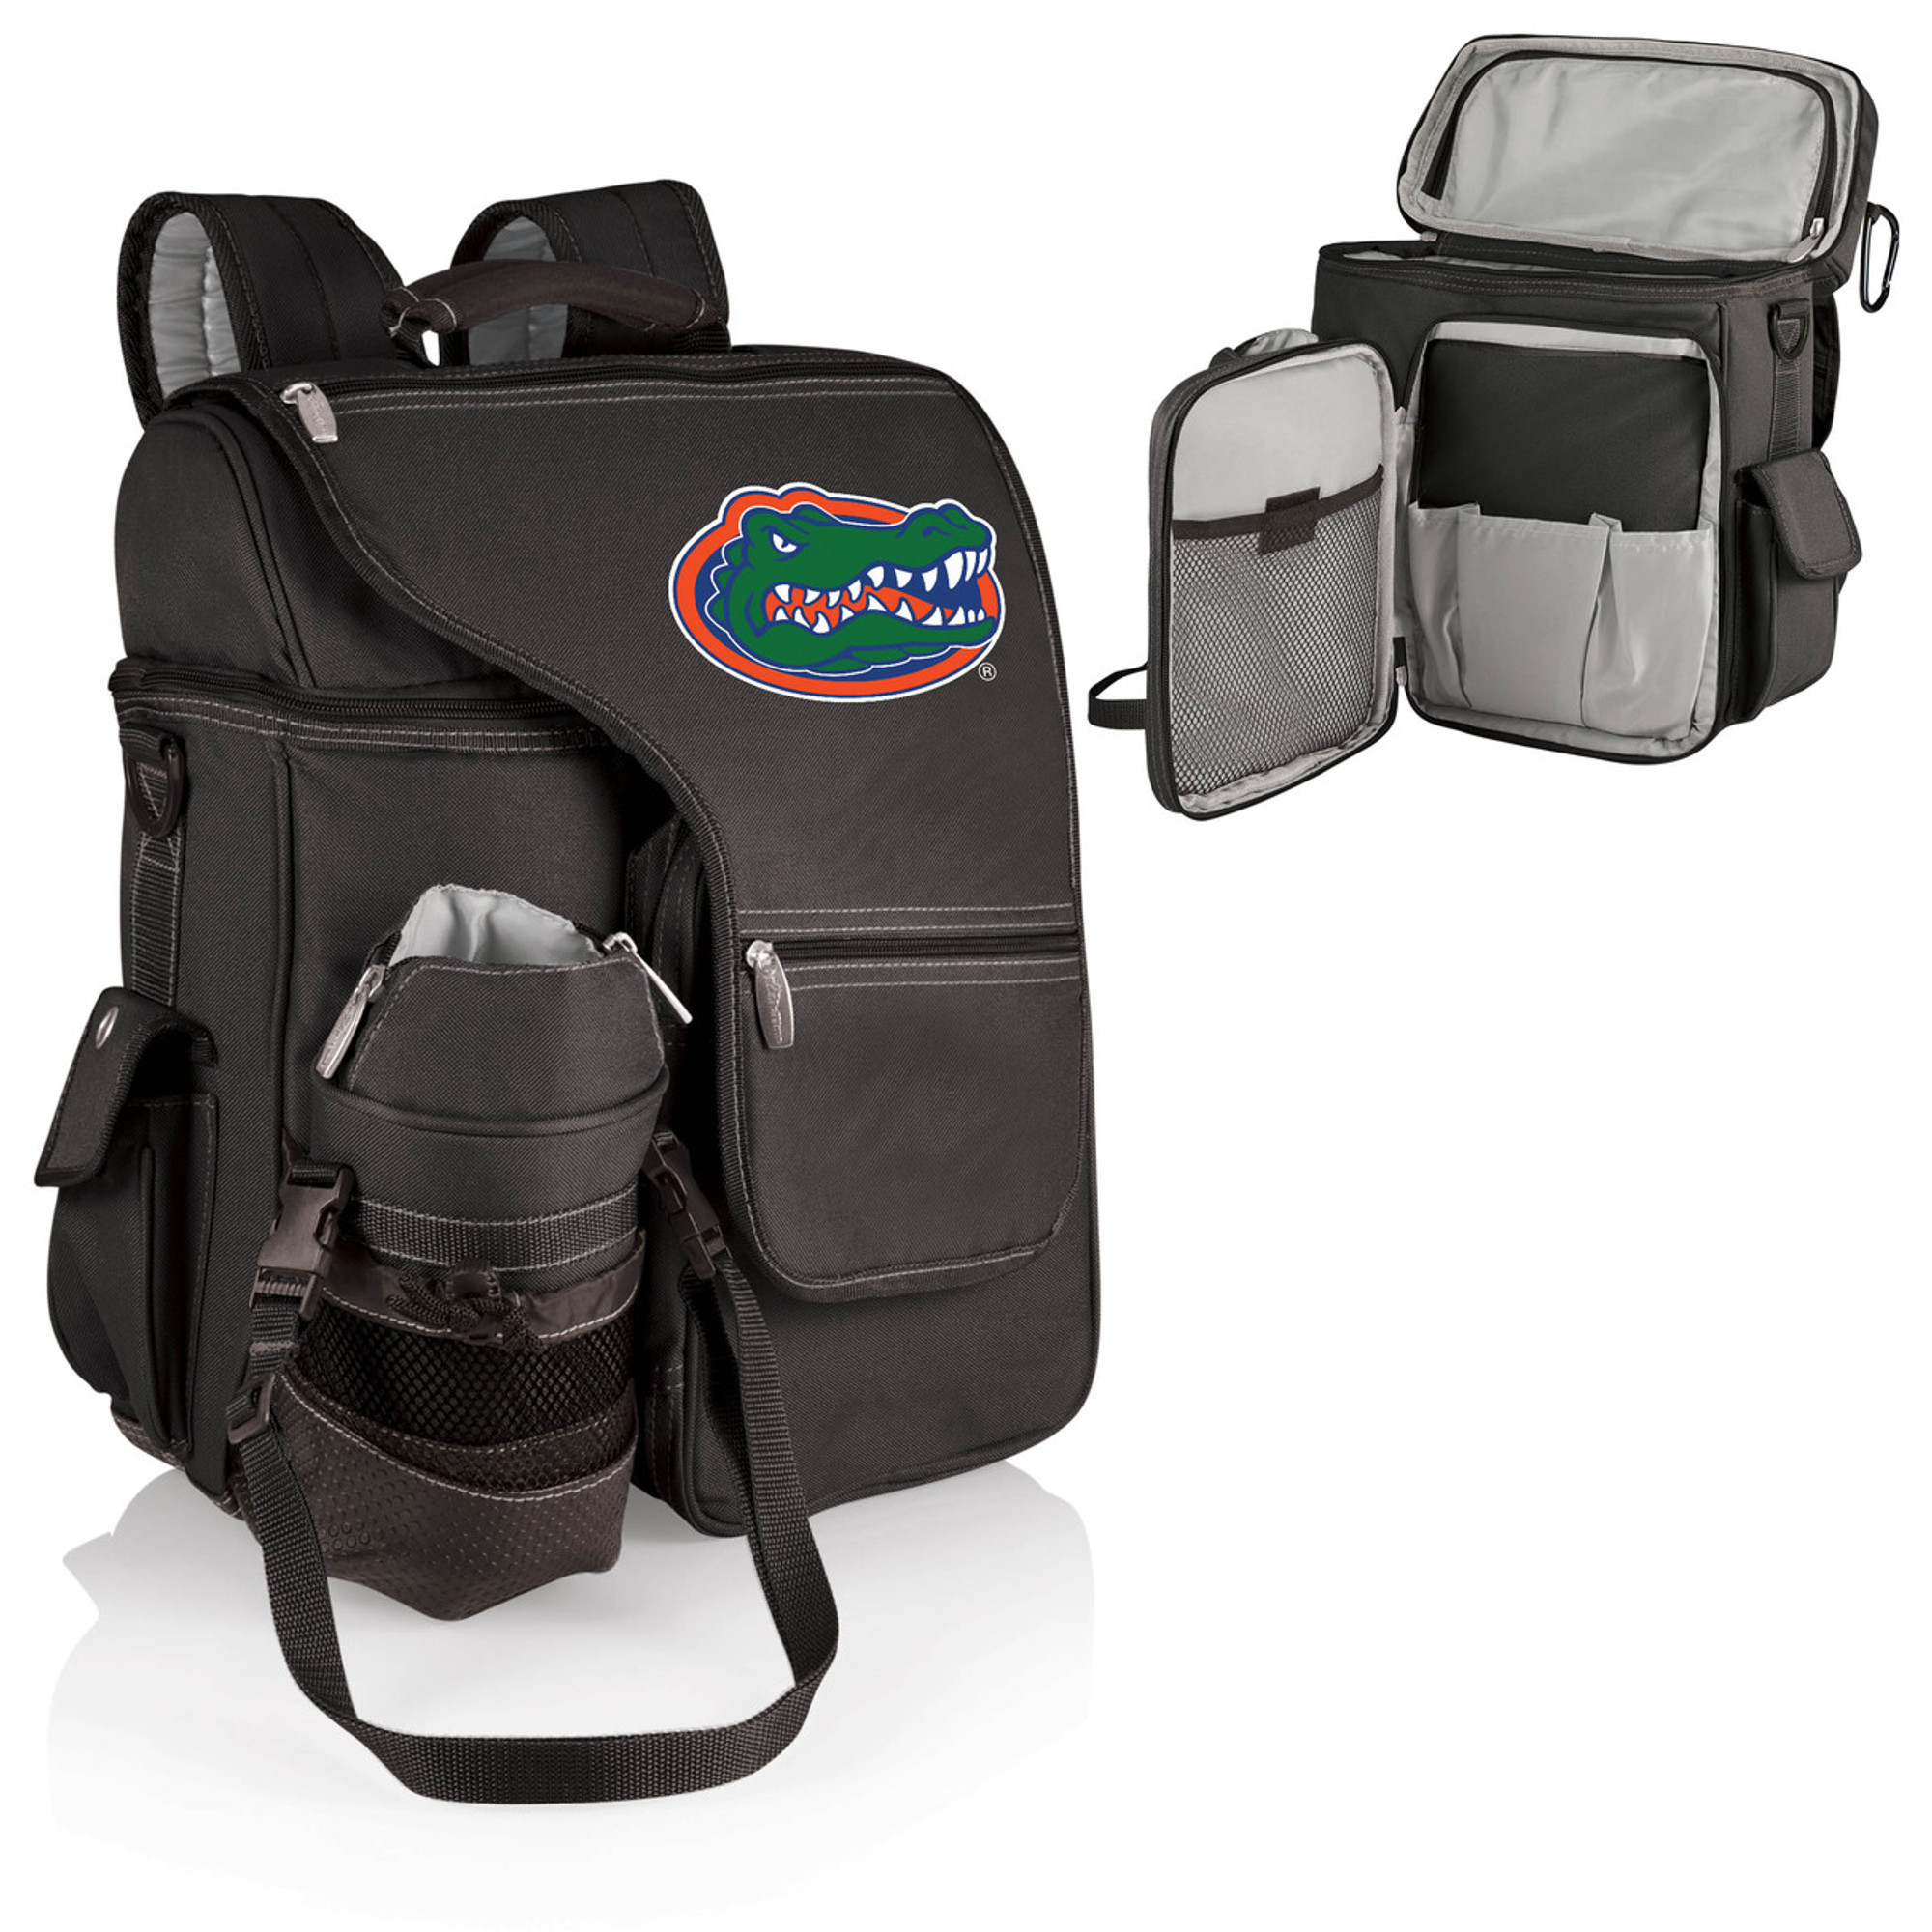 Picnic Time Turismo Virginia Cavaliers Print Backpacks